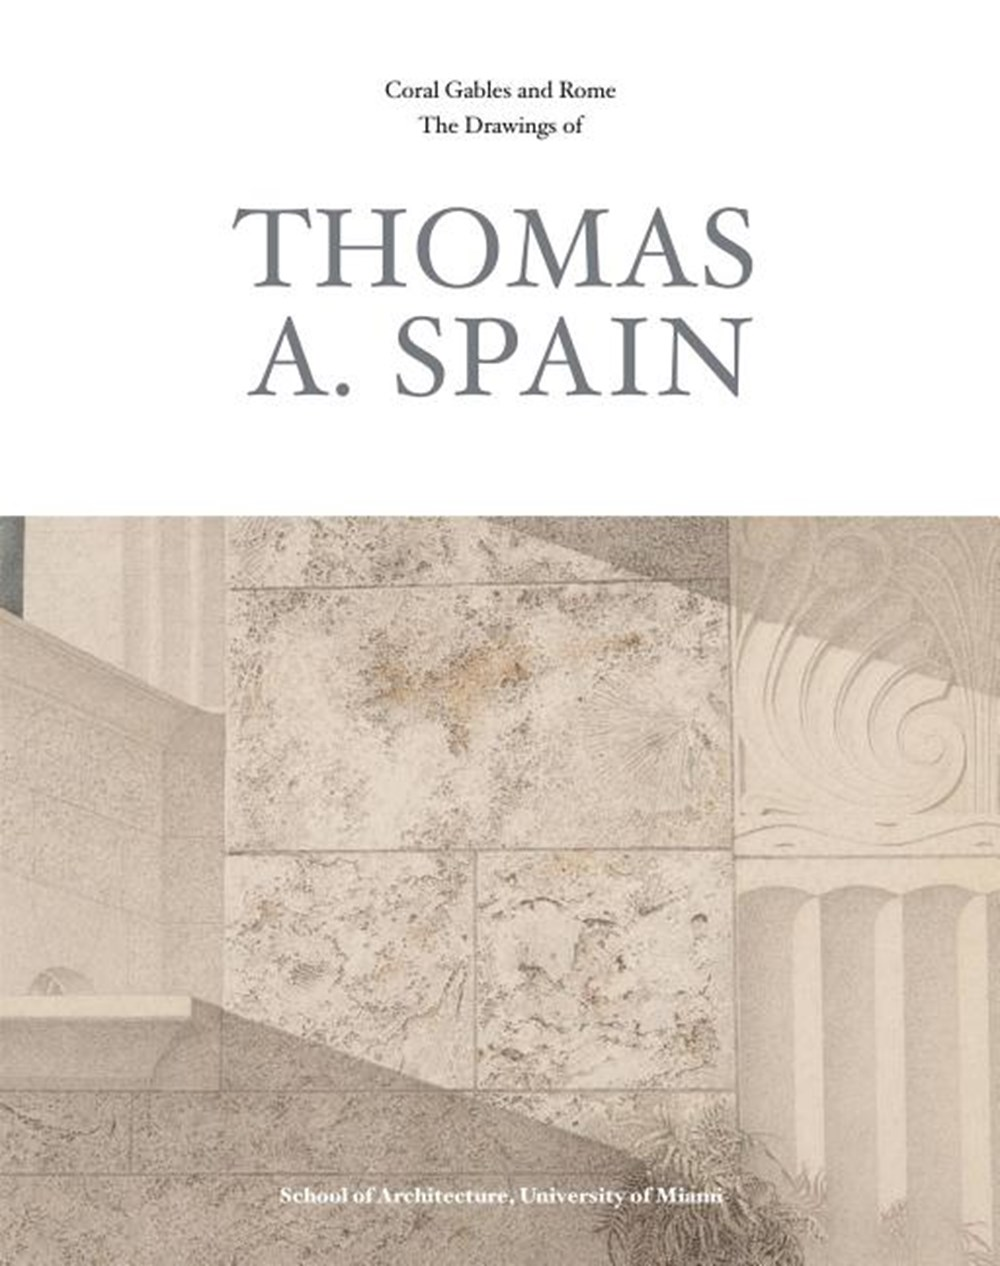 Drawings and Paintings of Coral Gables and Rome Thomas A. Spain